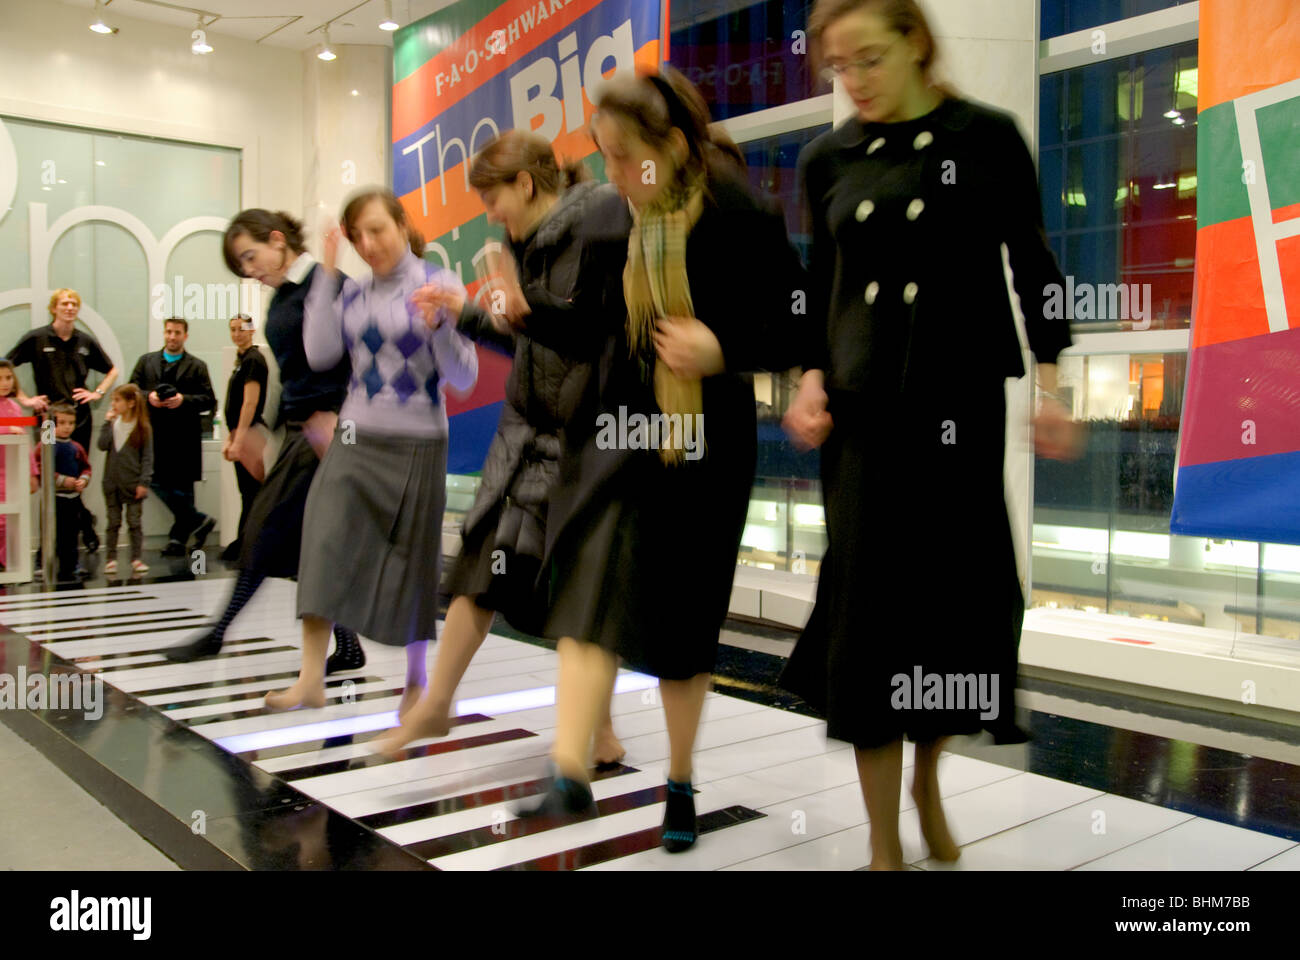 The Big Piano at FAO Schwarz, FAO is located in New York City on 5th Avenue - Stock Image